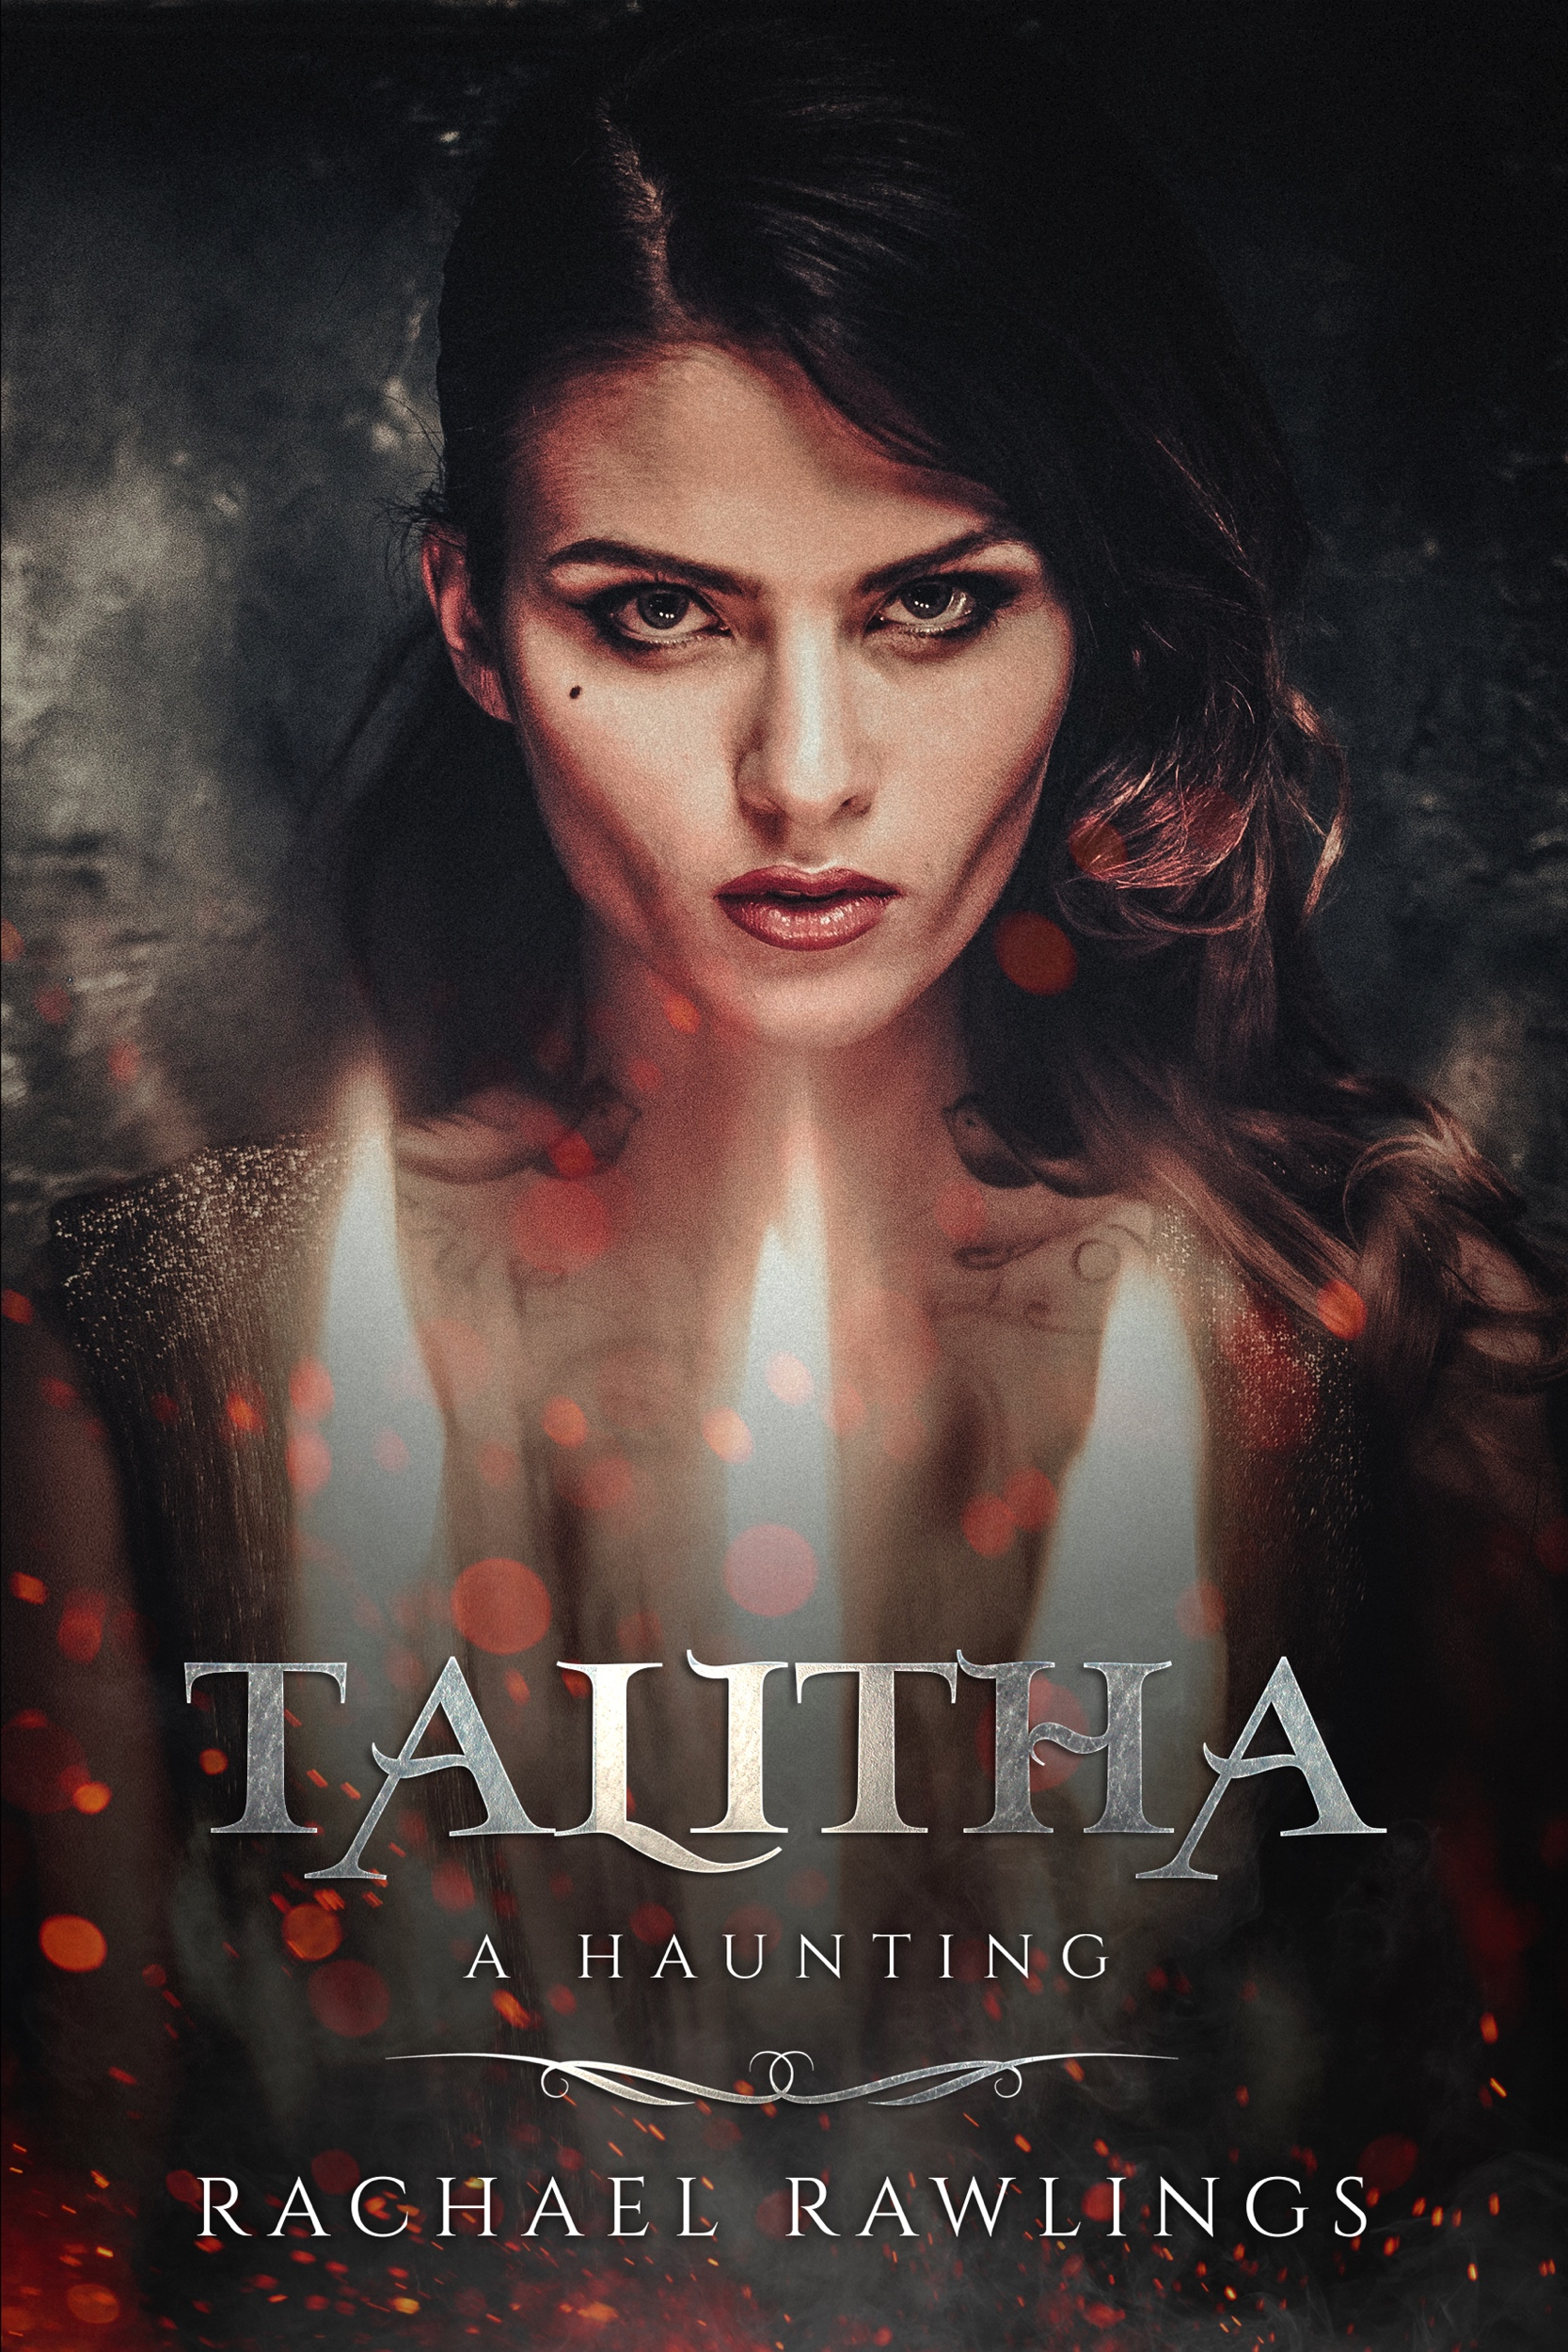 172119e81cb Talitha: A Haunting is the newest release from award winning Hydra  Publications author, Rachael Rawlings. Clare is a determined woman ready to  launch into ...